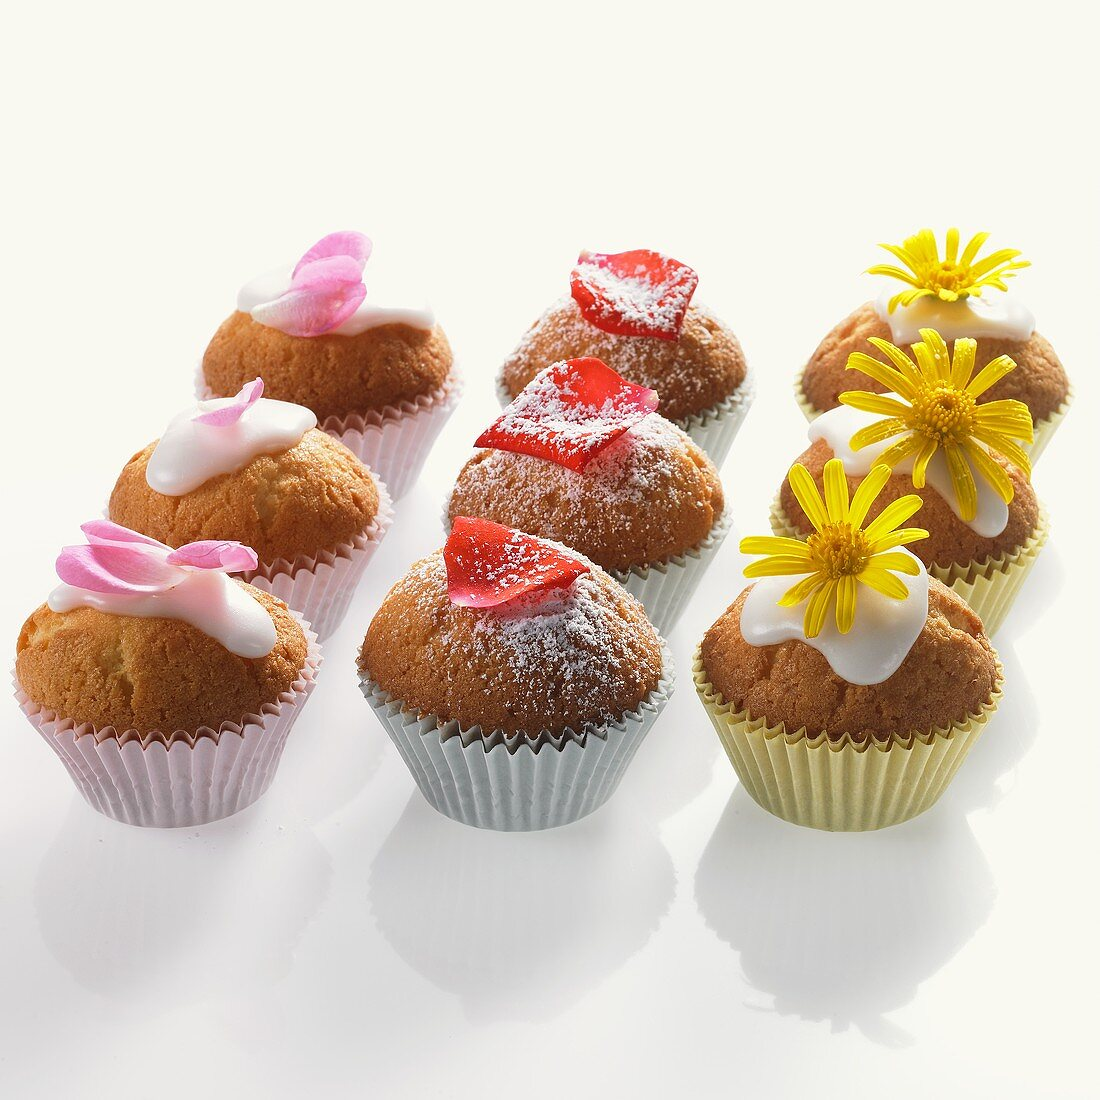 Mini-muffins with edible flowers